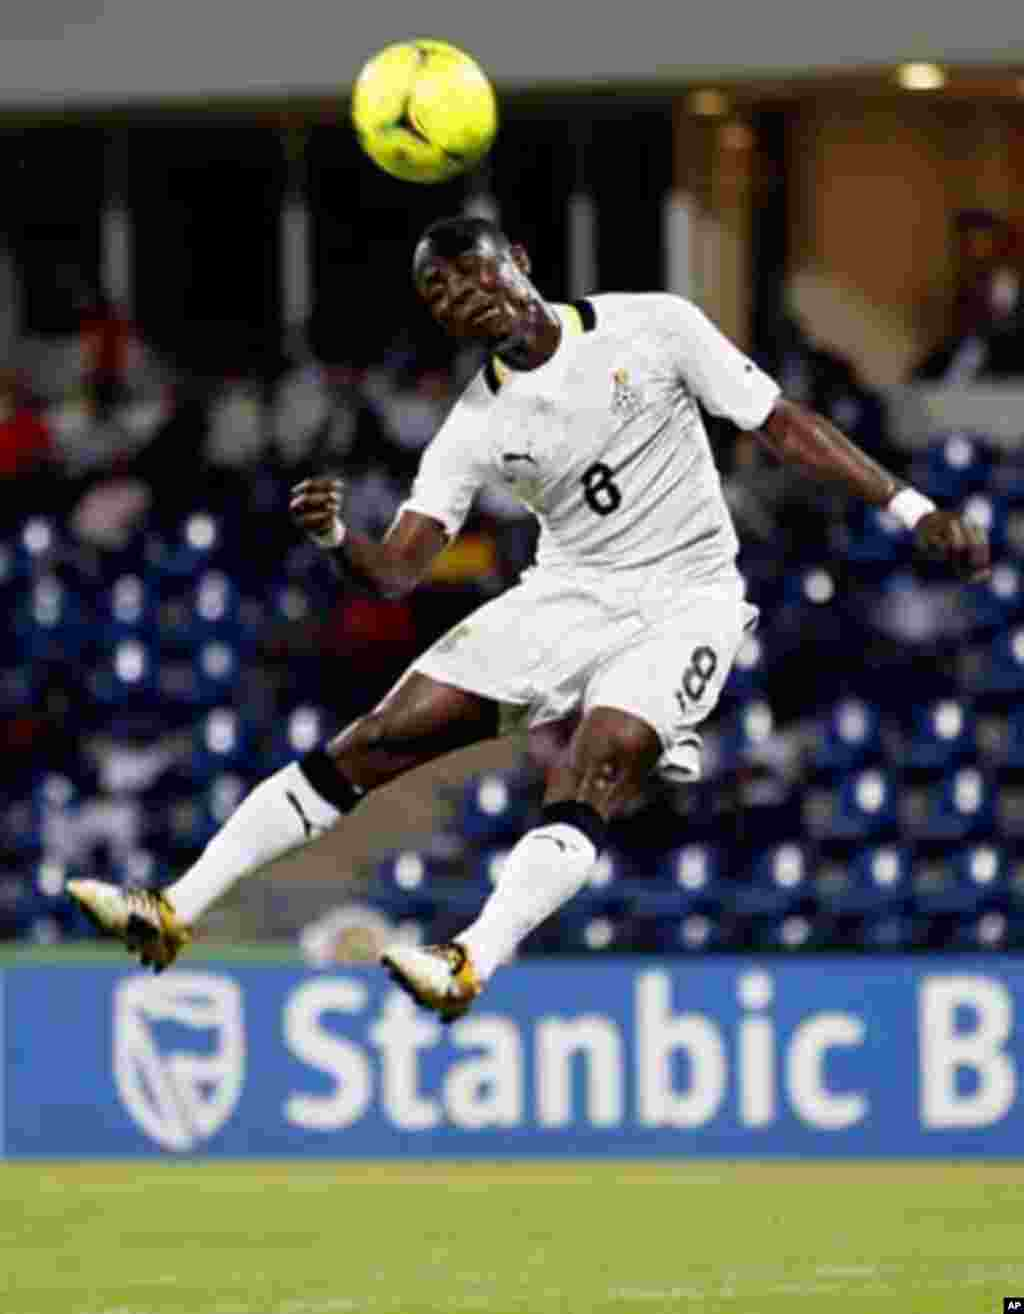 Ghana's Emmaneul Badu Agyemang jumps for the ball during their African Nations Cup quarter-final soccer match against Tunisia at Franceville stadium February 5, 2012.